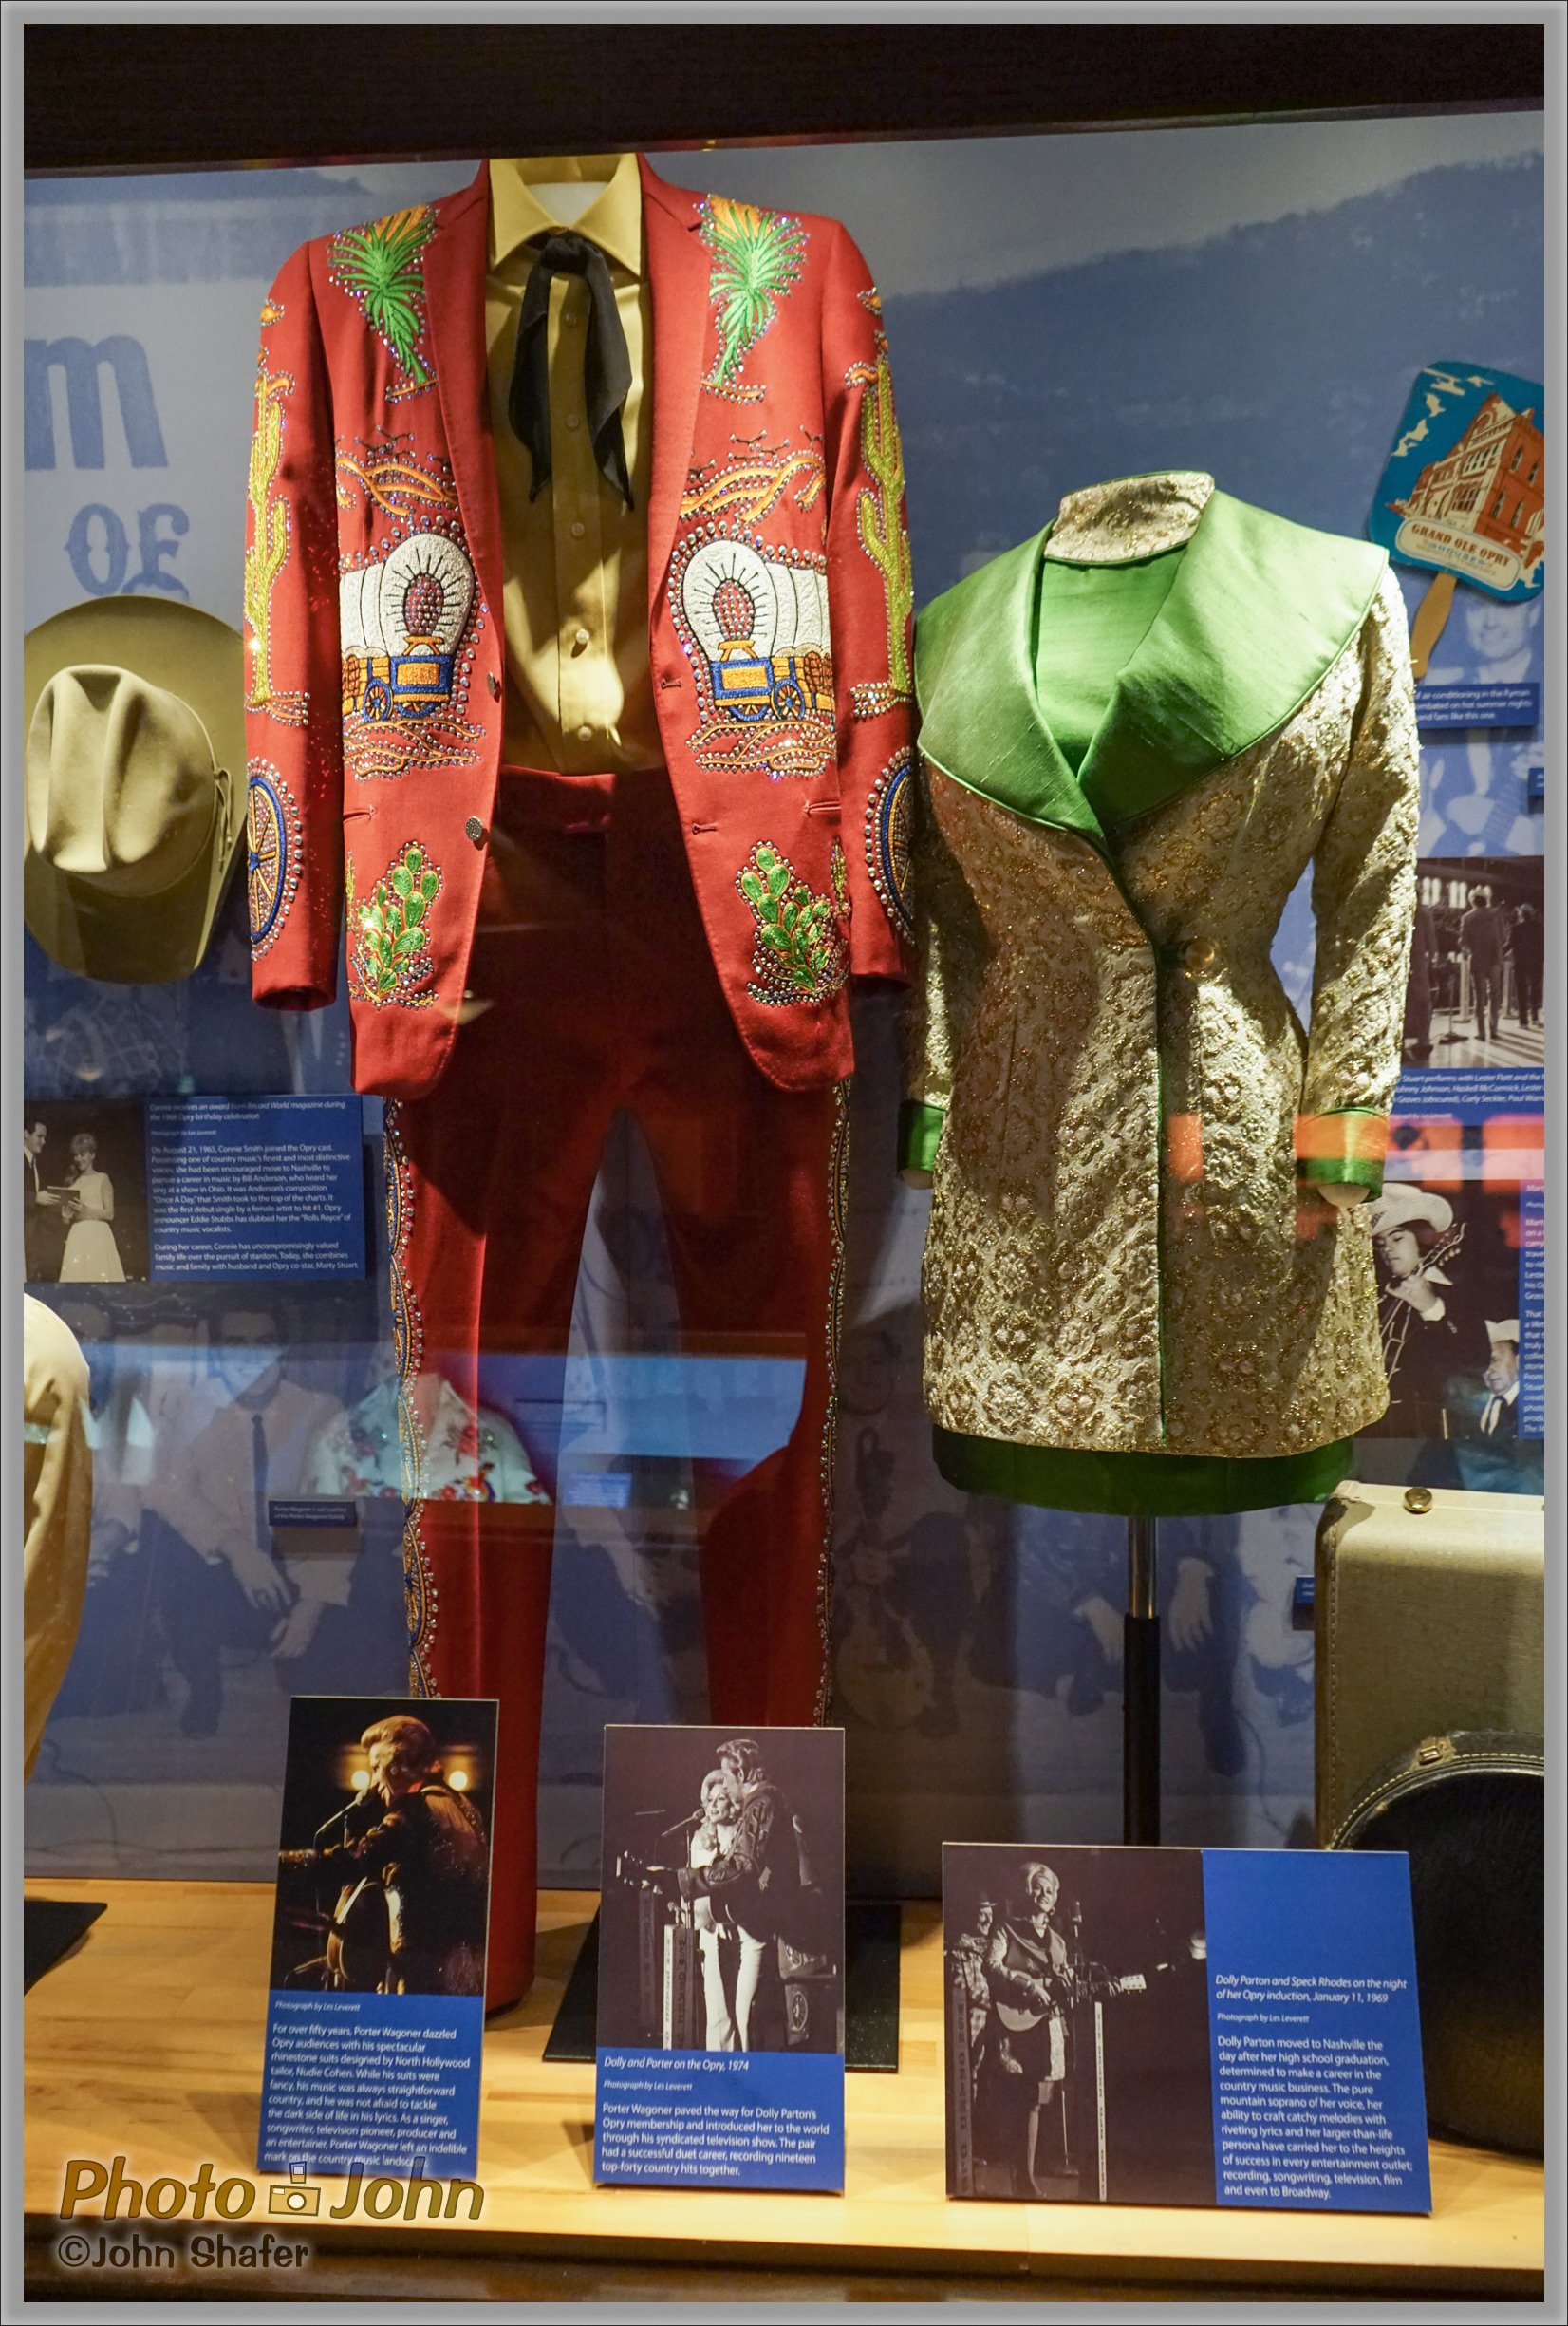 Sony Alpha A7R - Porter Wagoner & Dolly Parton's Clothes - Ryman Auditorium